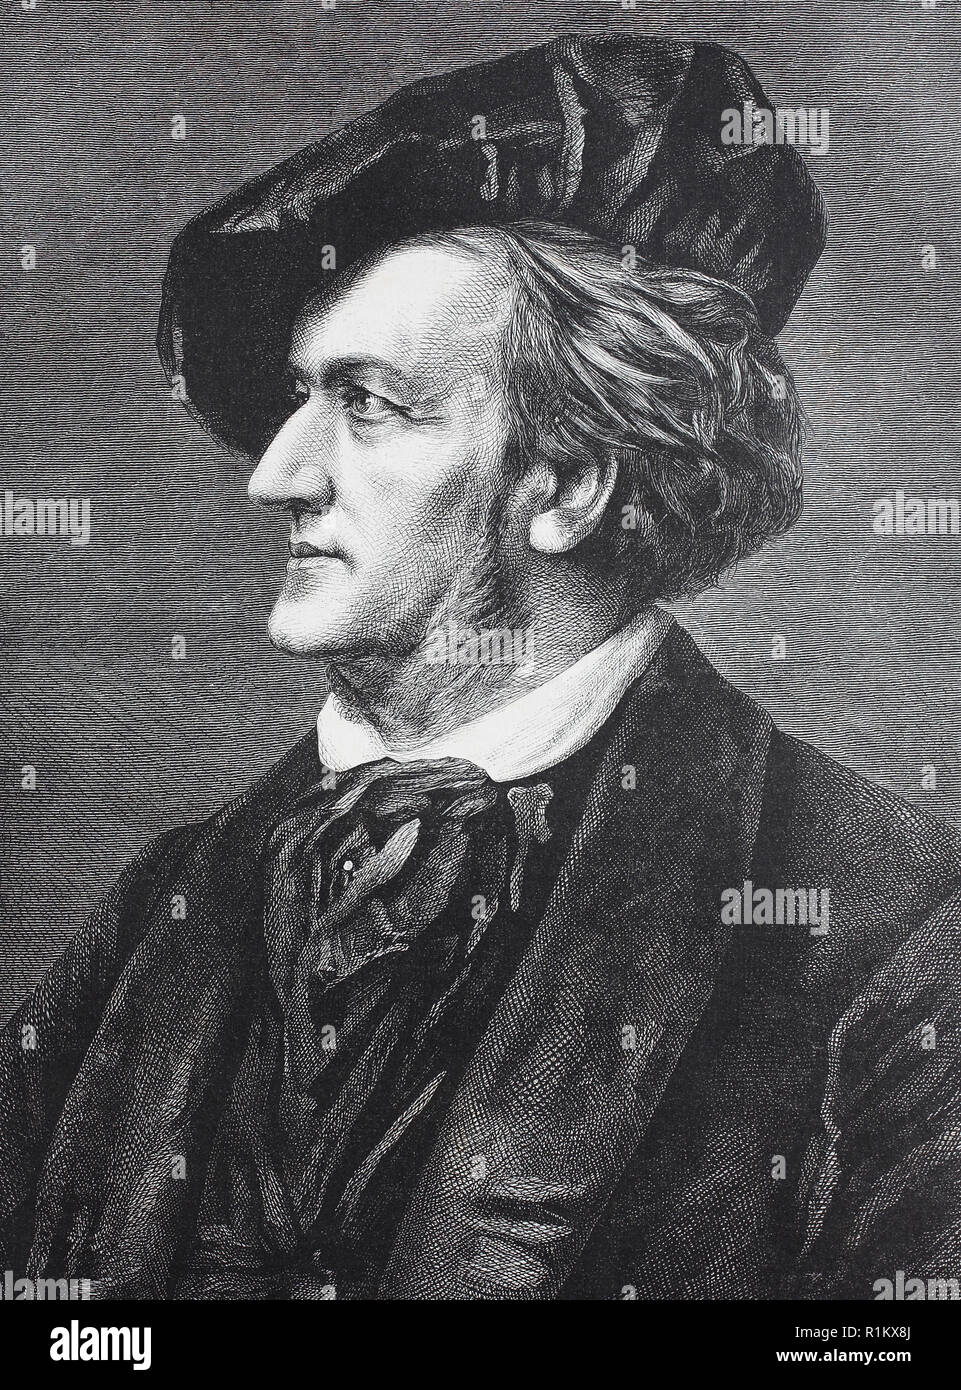 Digital improved reproduction, Wilhelm Richard Wagner, 1813-1883, was a German composer, theatre director, polemicist, and conductor who is chiefly known for his operas - Stock Image